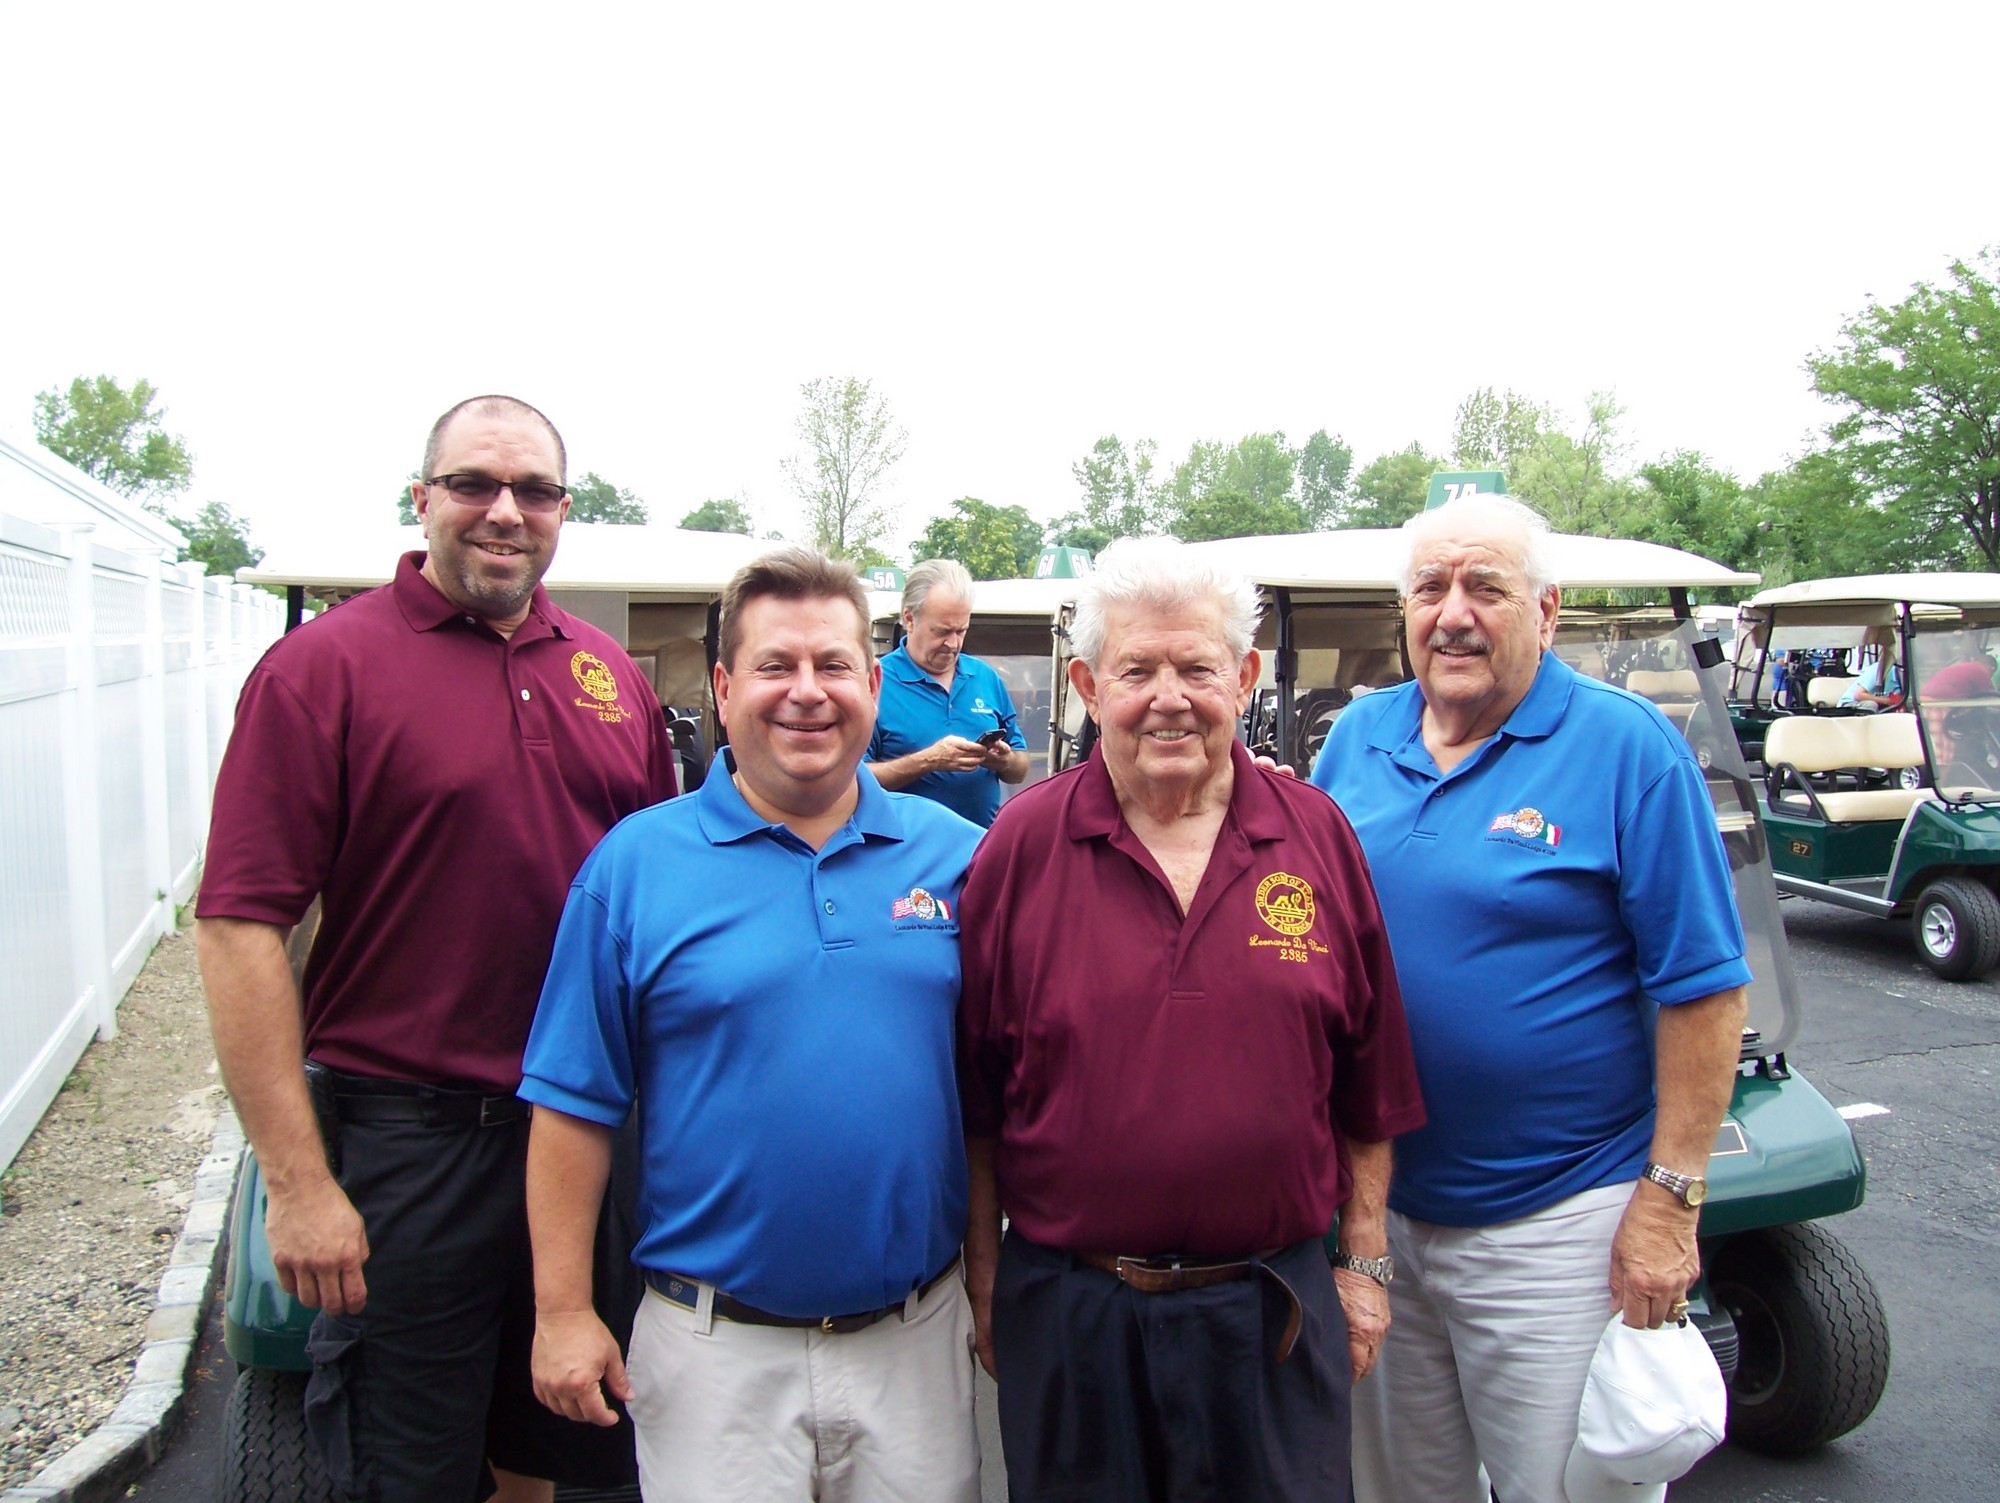 Inwood Country Club played host to the annual Leonardo da Vinci Lodge 2385 Sons of Italy golf outing. From left were golf committee members Andrew Reilly Jr., Chairman Ken Piteo, John Super and Pete Capozzi.